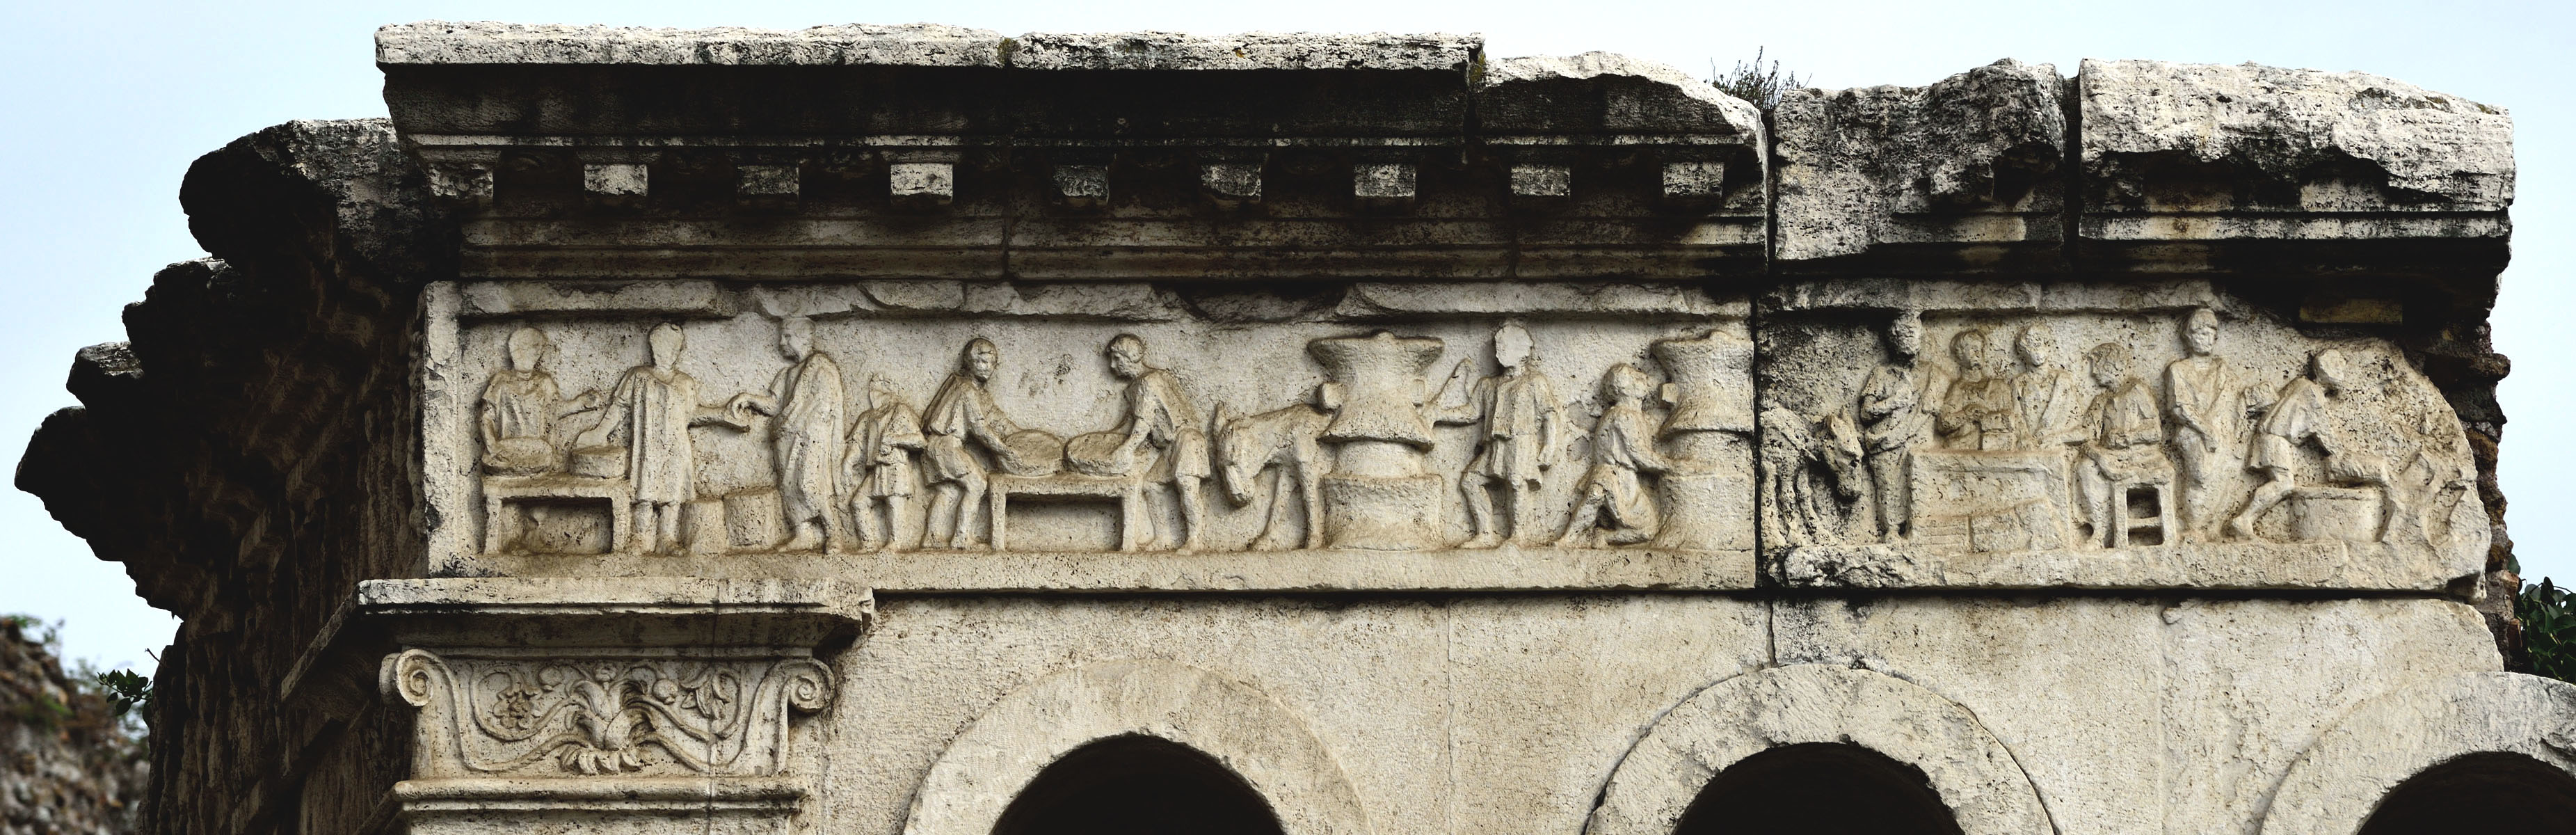 Tomb of Eurysaces. Frieze relief of the southern side. Late 1st century BCE. Rome, Tomb of Eurysaces